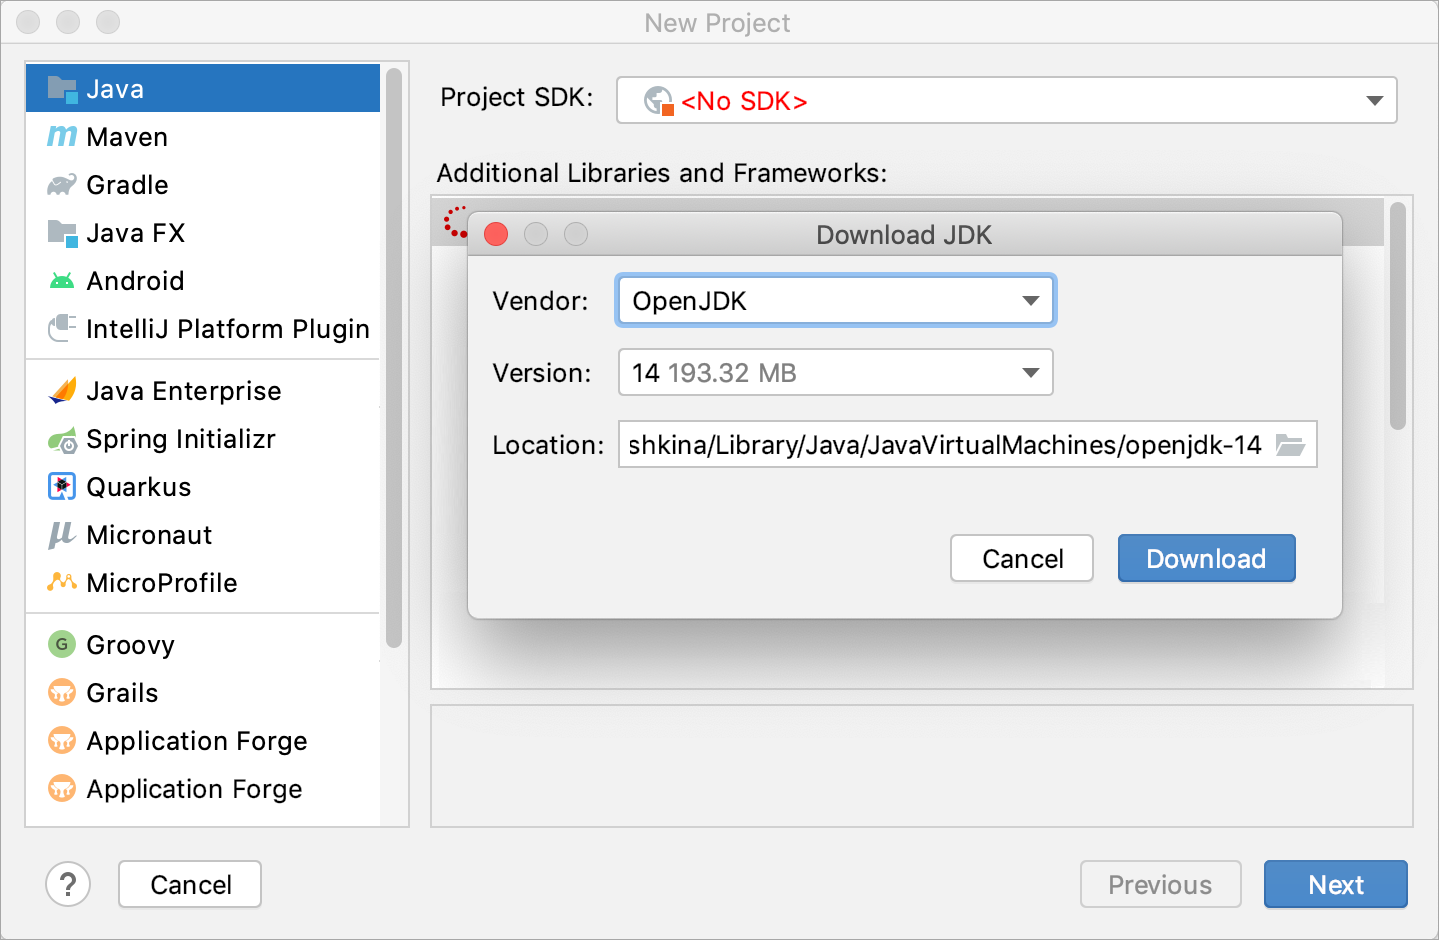 Downloading a JDK for the new project